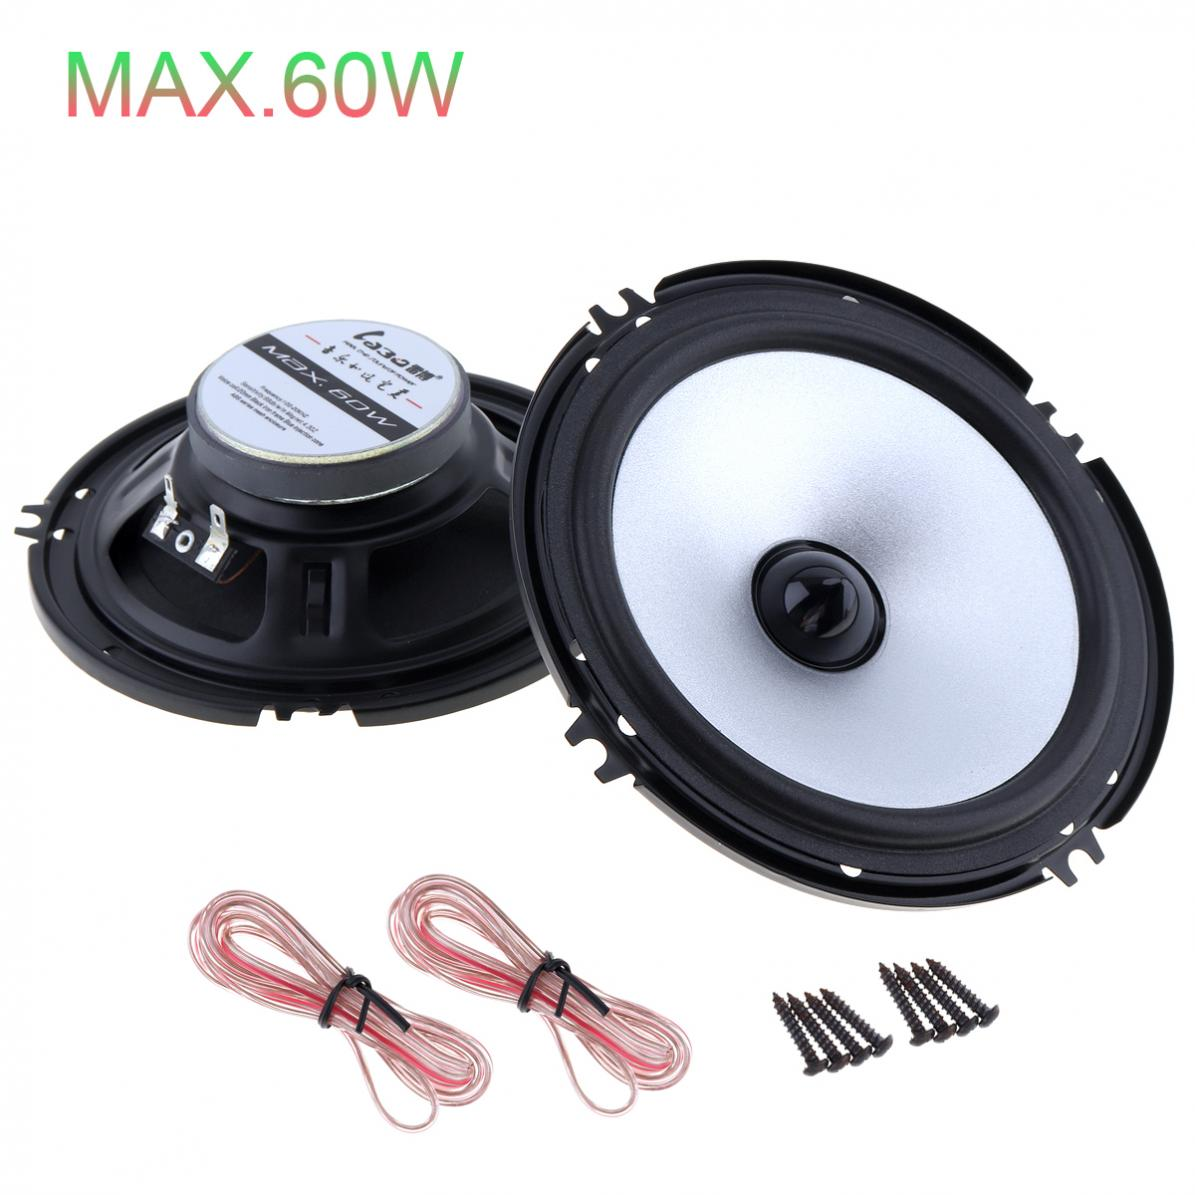 2pcs 6.5 Inch Car Speaker 60W 88dB Automobile Car Coaxial HiFi Speakers Vehicle Audio Music Full Range Frequency Loudspeaker